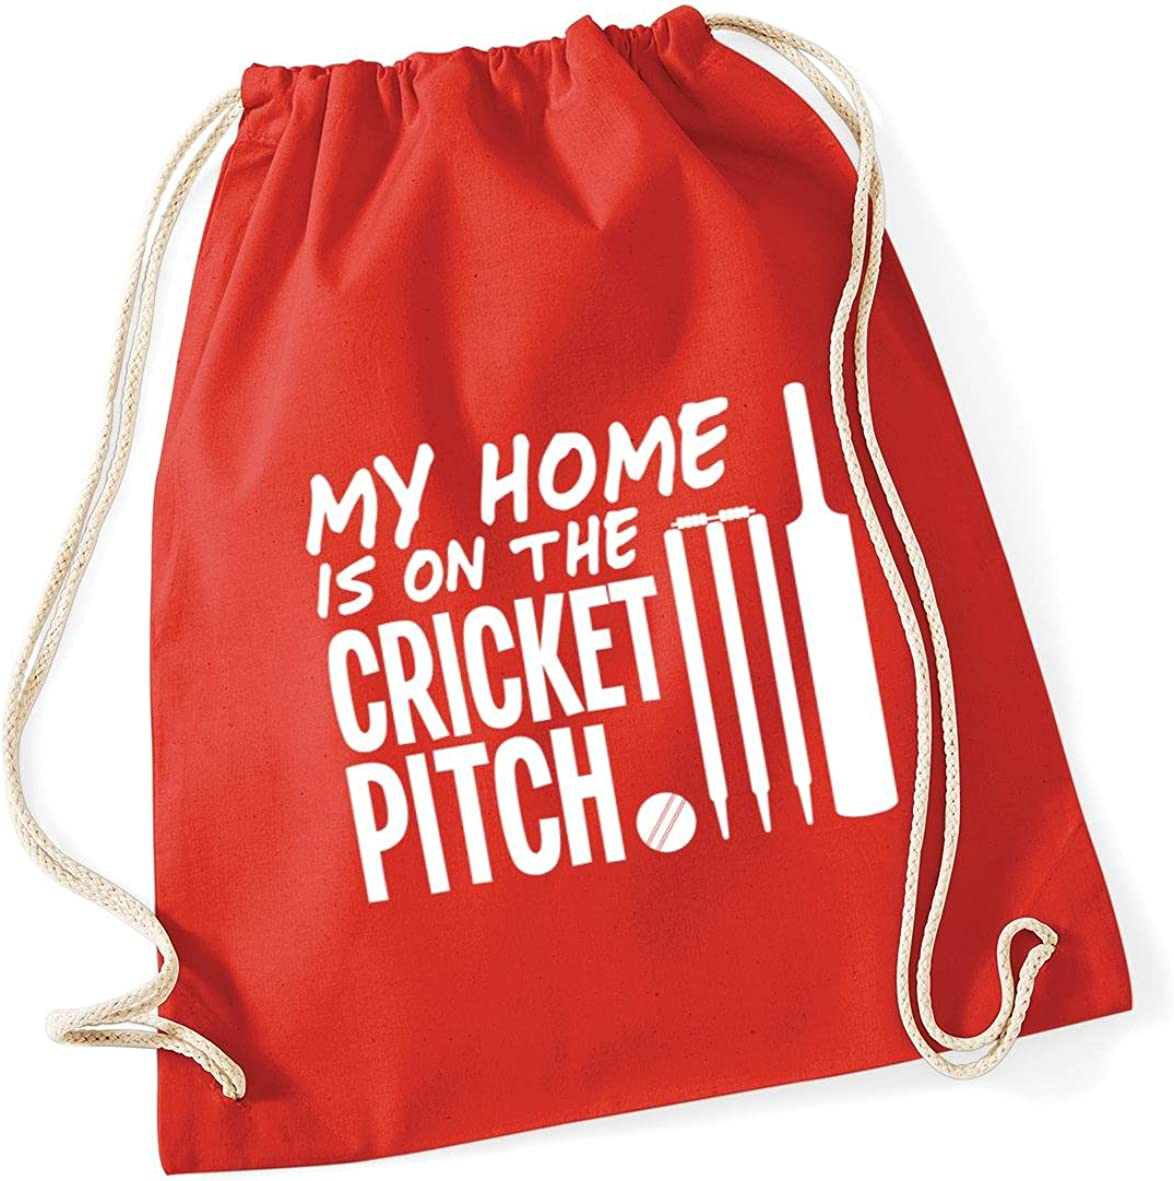 12 litres HippoWarehouse My Home is on the Cricket Pitch Drawstring Cotton School Gym Kid Bag Sack 37cm x 46cm